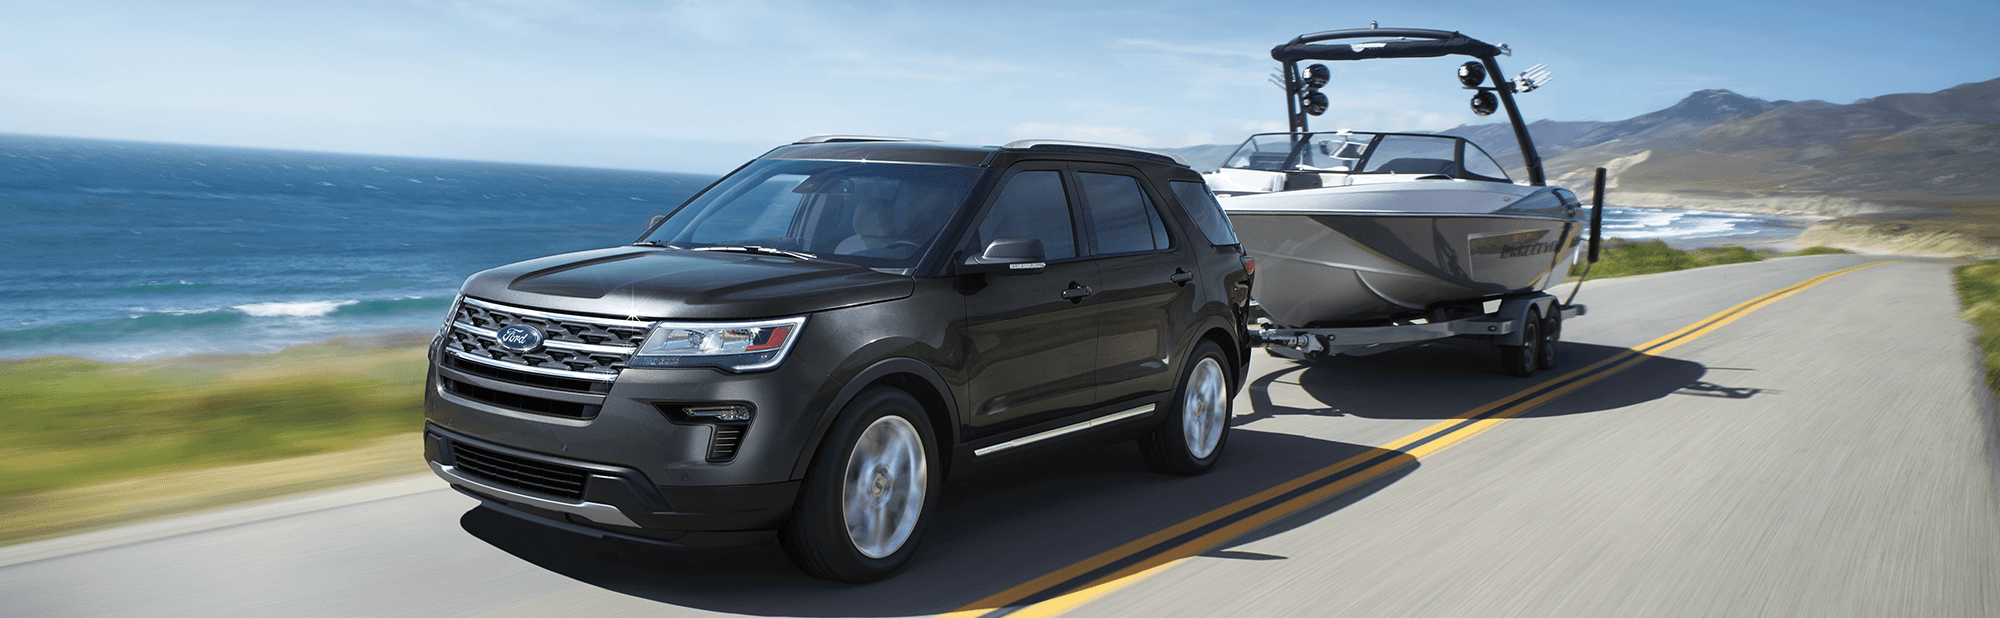 2019 Ford Explorer models and specs | SoCal Ford Dealers